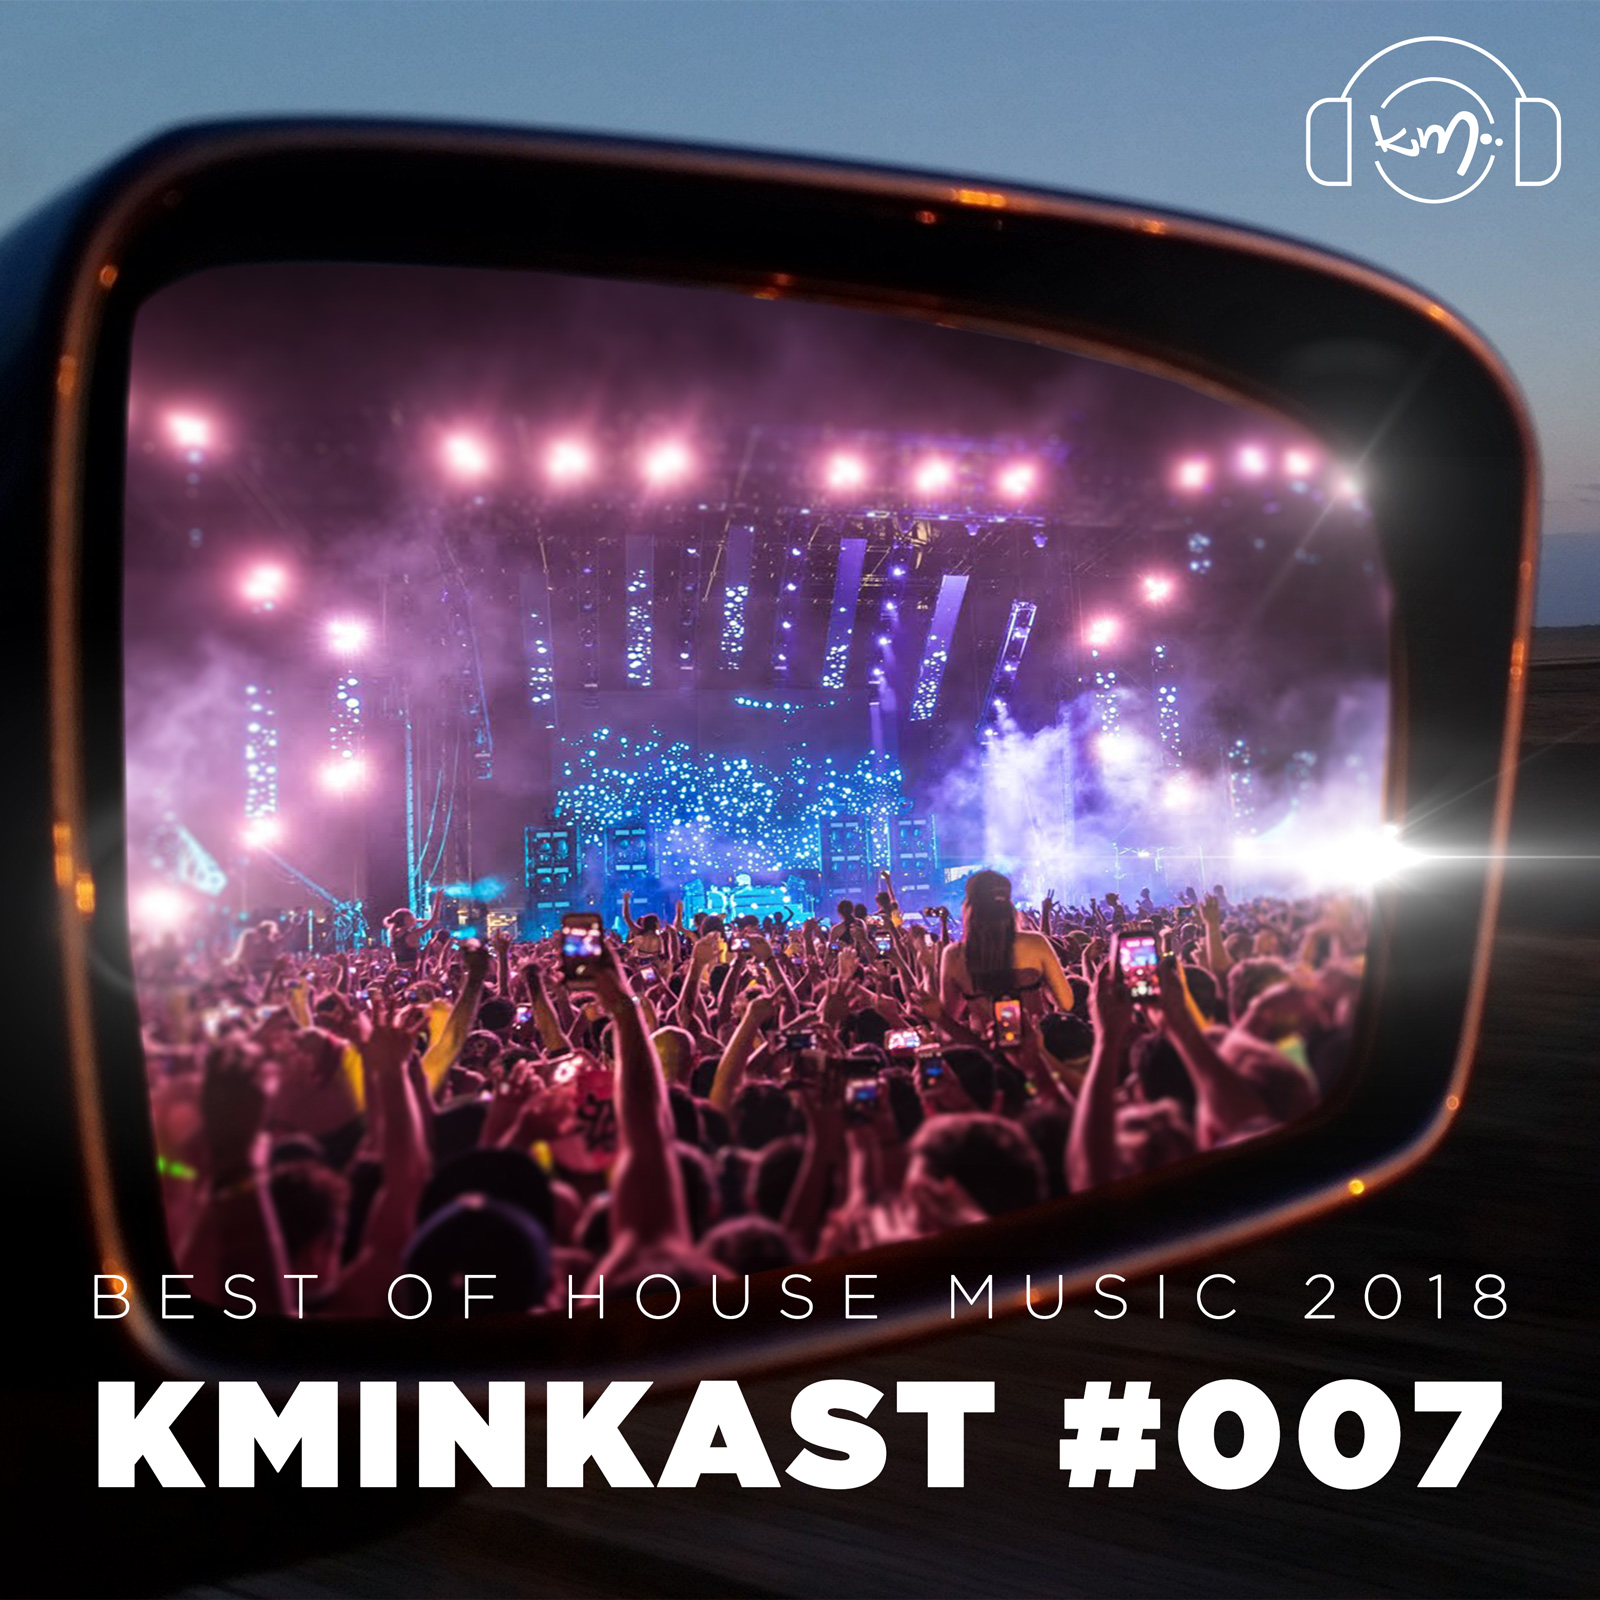 KminKAST 007 - Best of House Music 2018